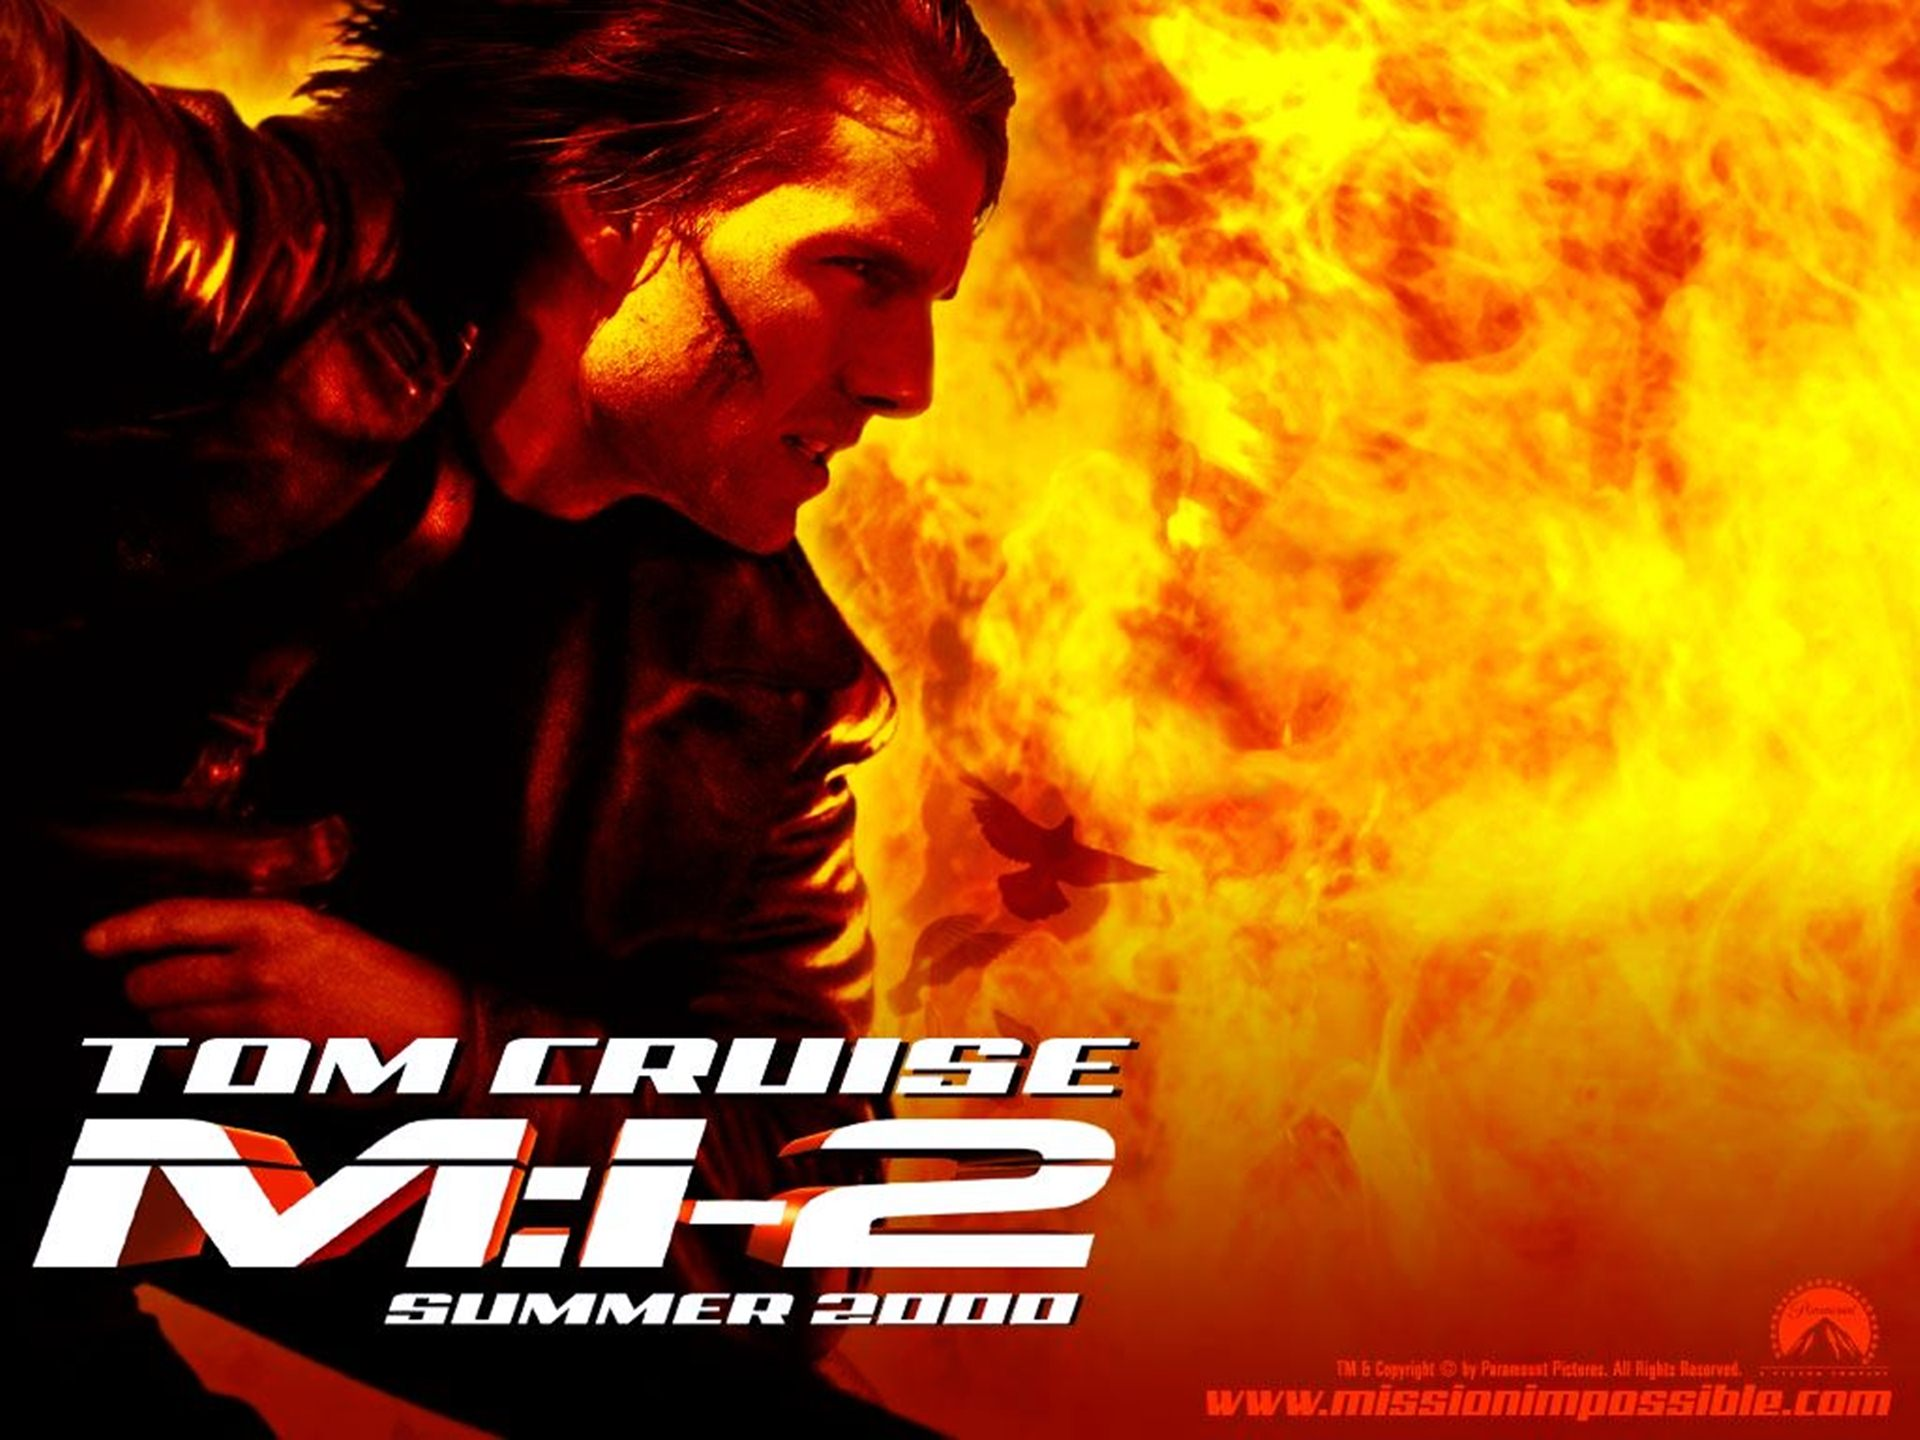 Eppler Ranking The Mission Impossible Movies